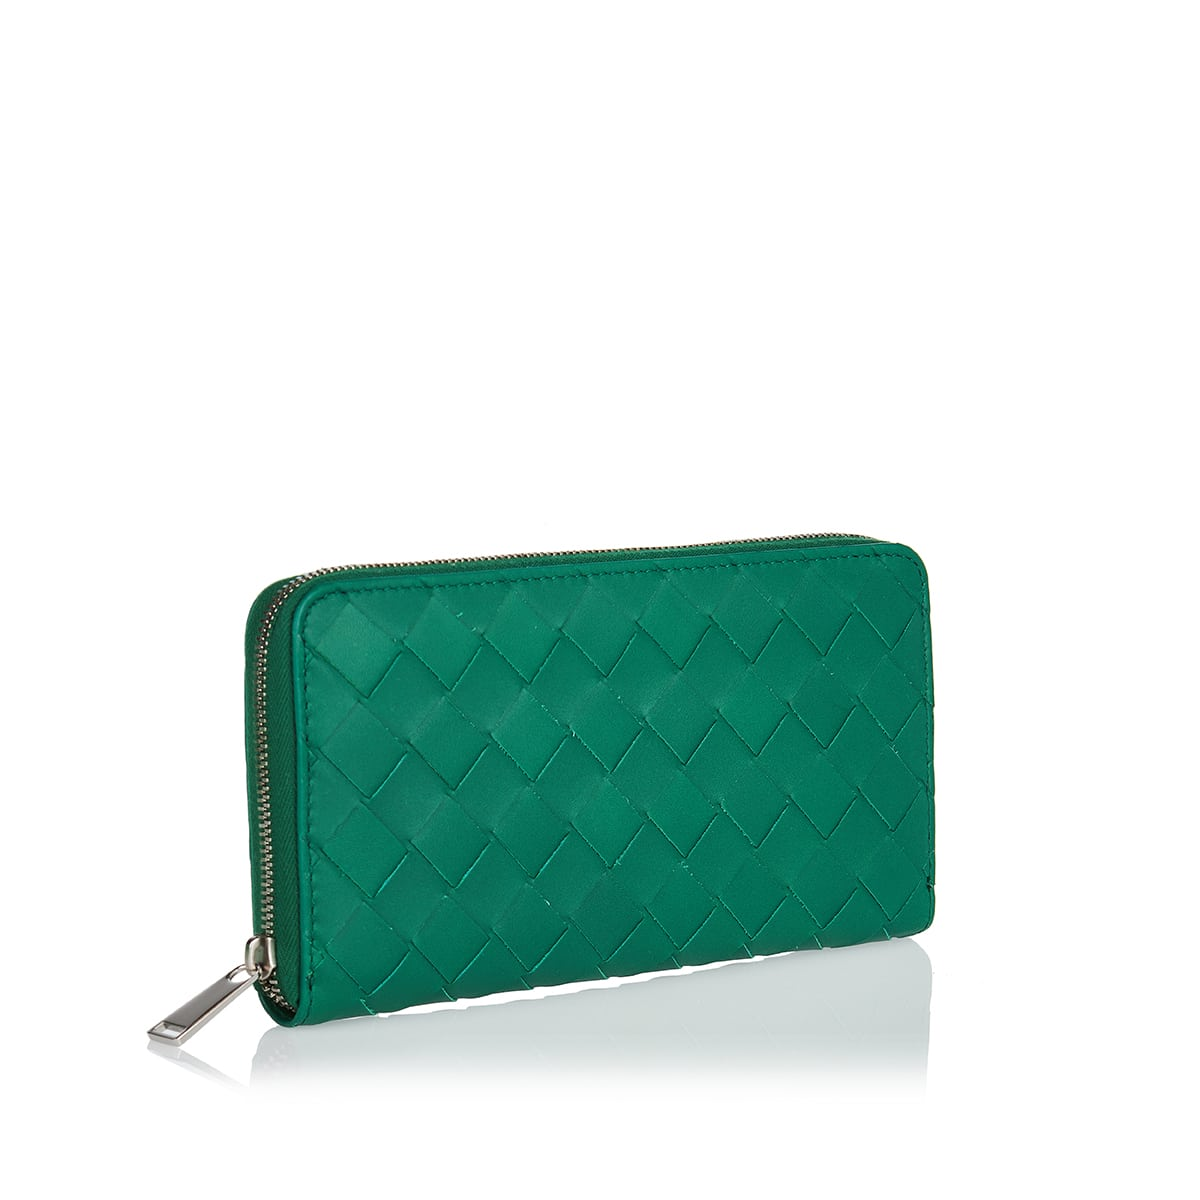 Zip-around Intrecciato leather wallet